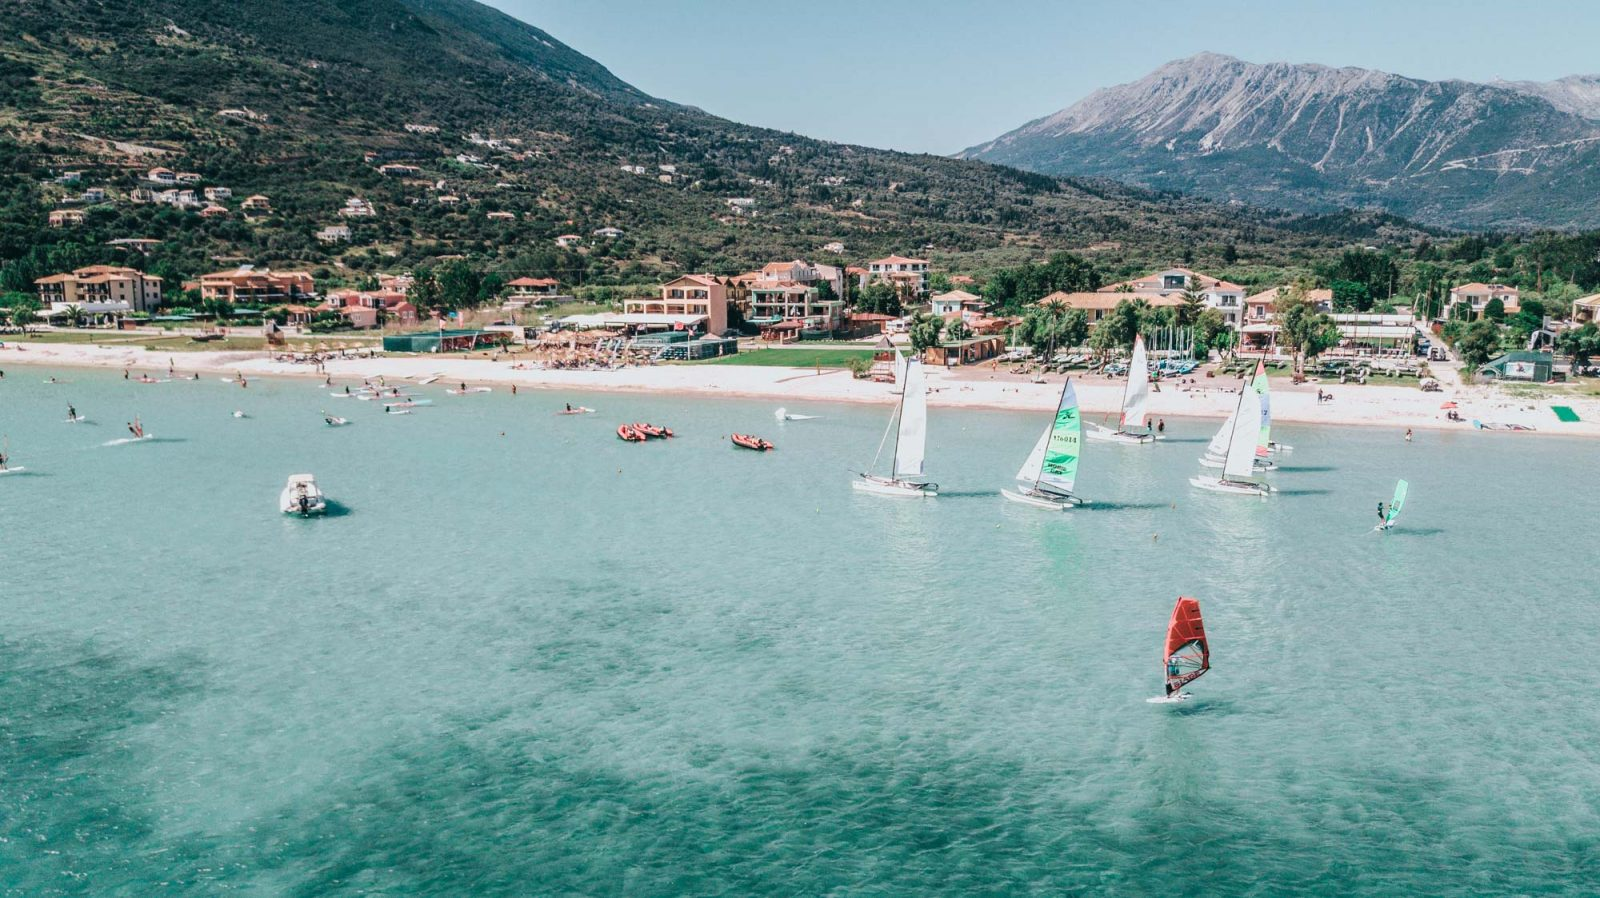 Vassiliki Beach is one of the best beaches in Lefkada for windsurfing